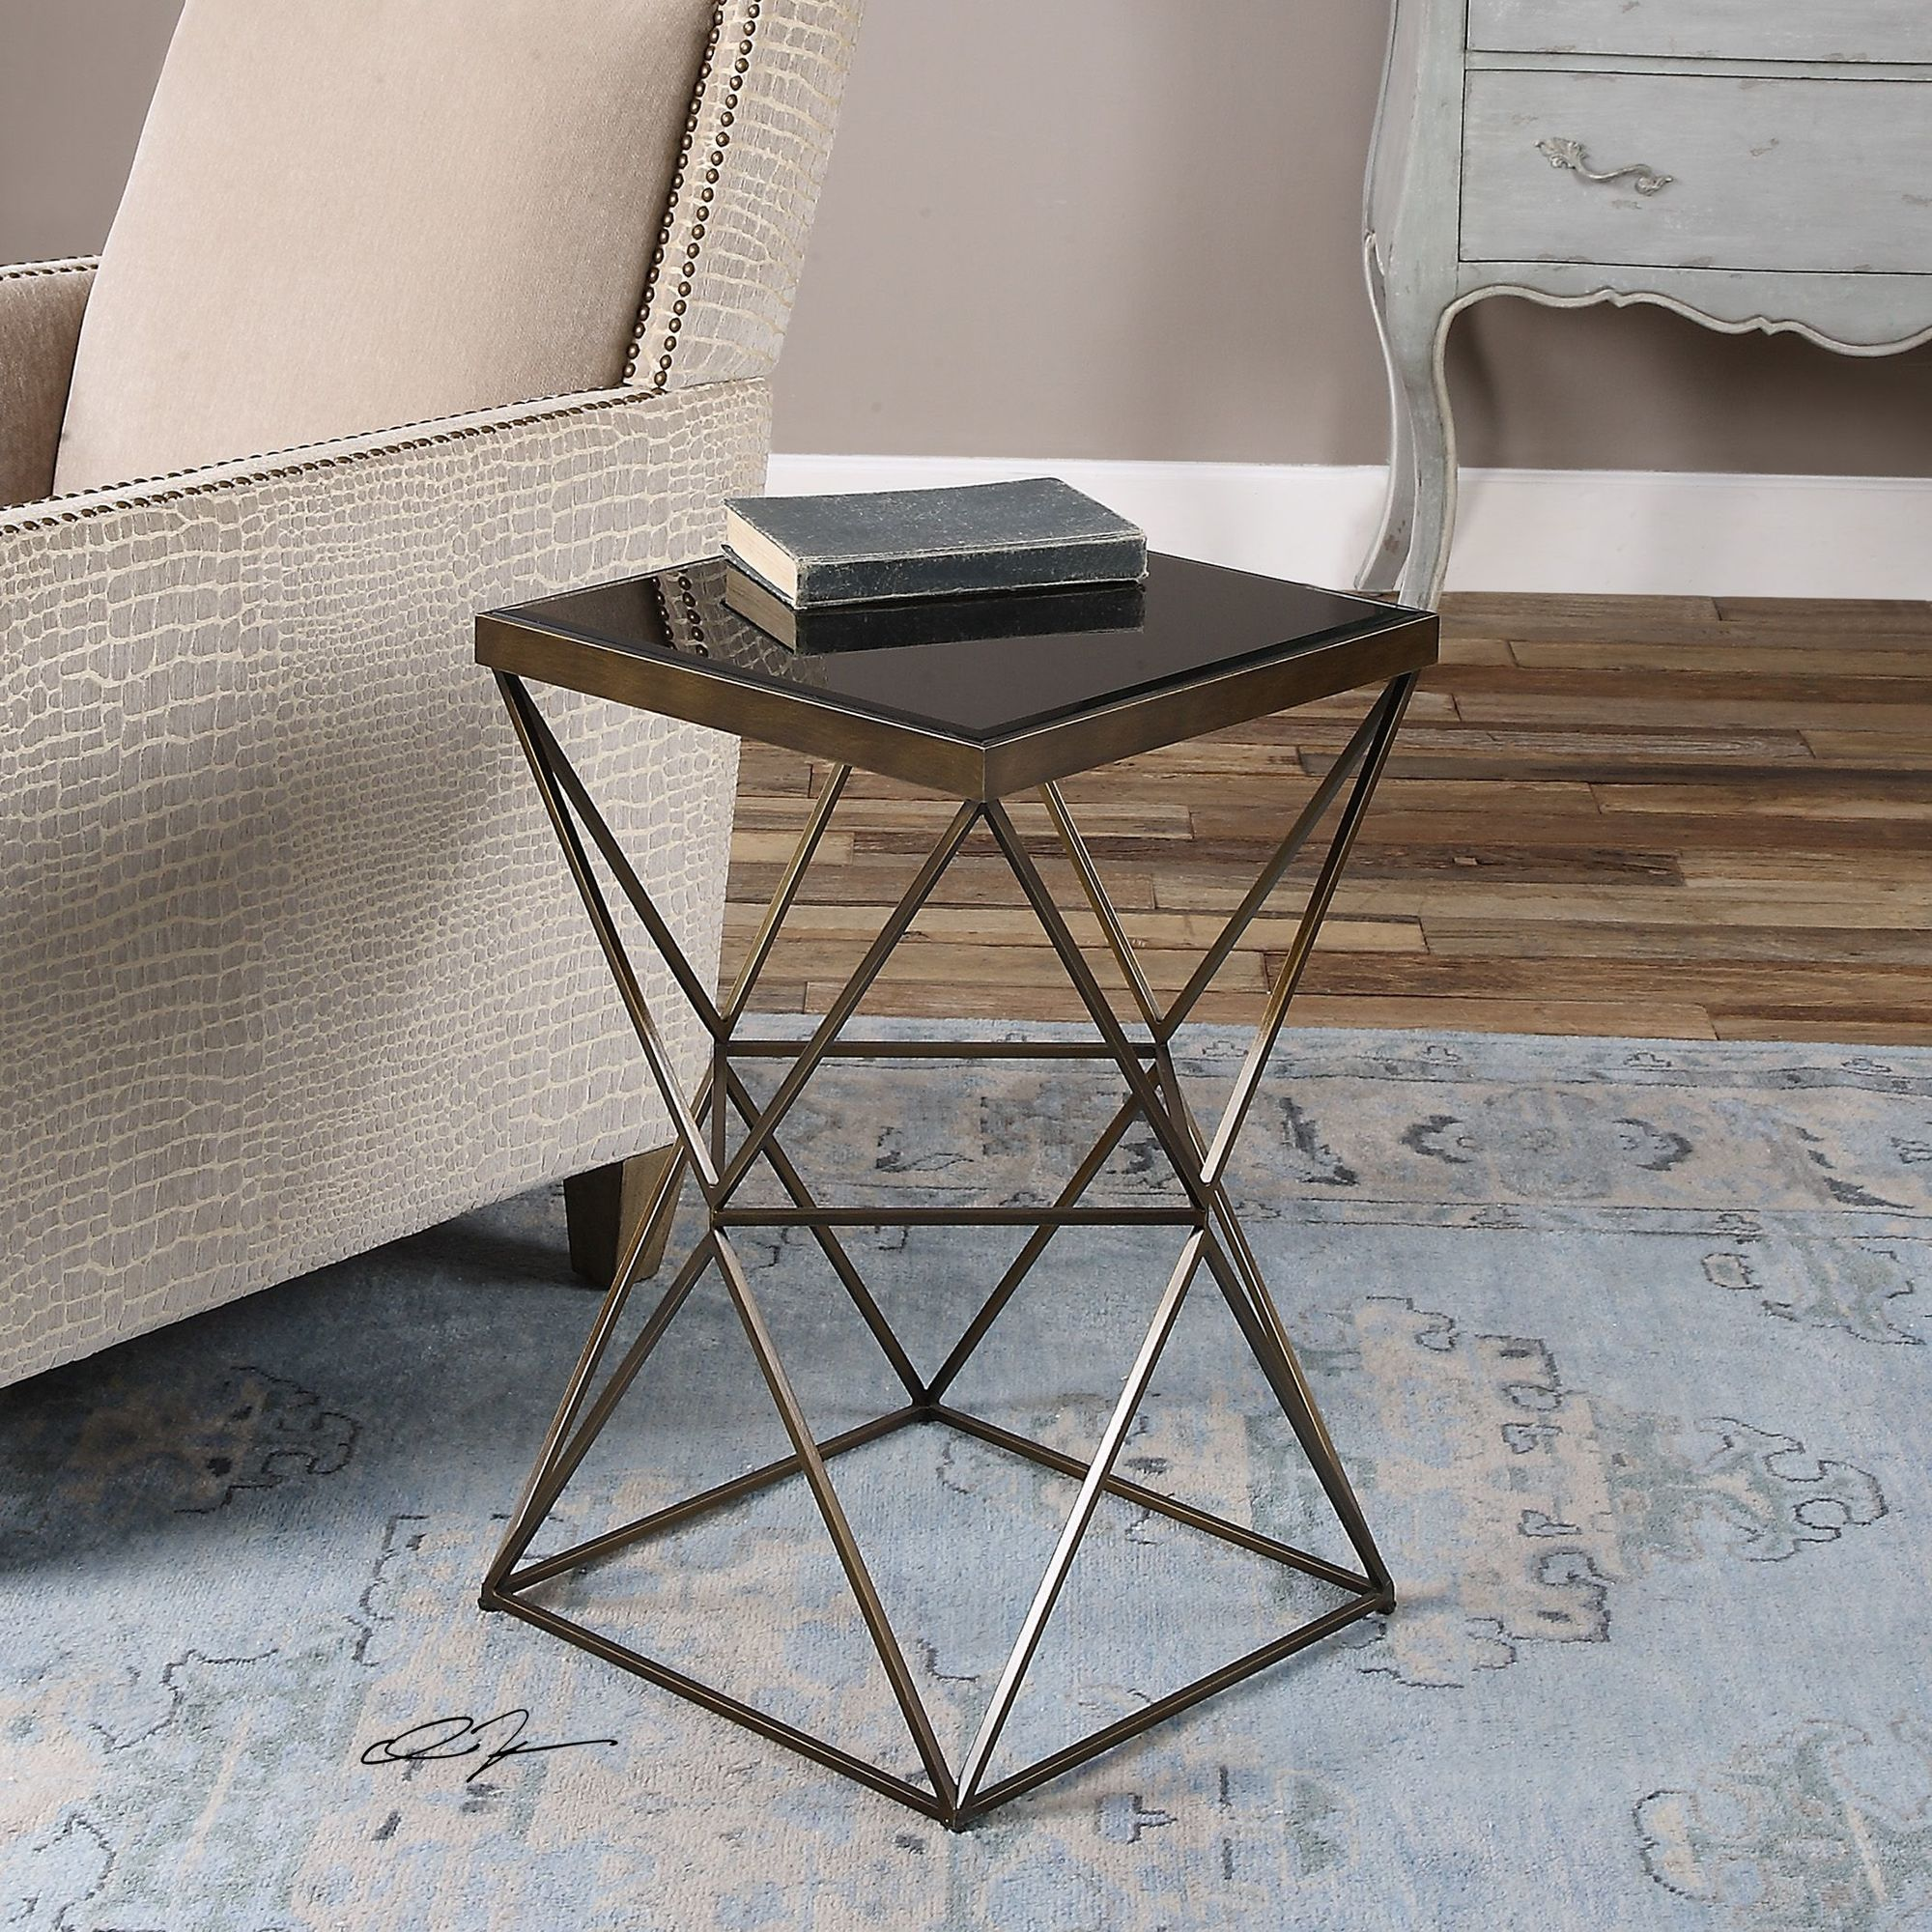 caged frame beveled top accent table antique bronze mathis patio furniture covers canadian tire outdoor side with umbrella hole farmhouse style kitchen chairs lobby linen runner